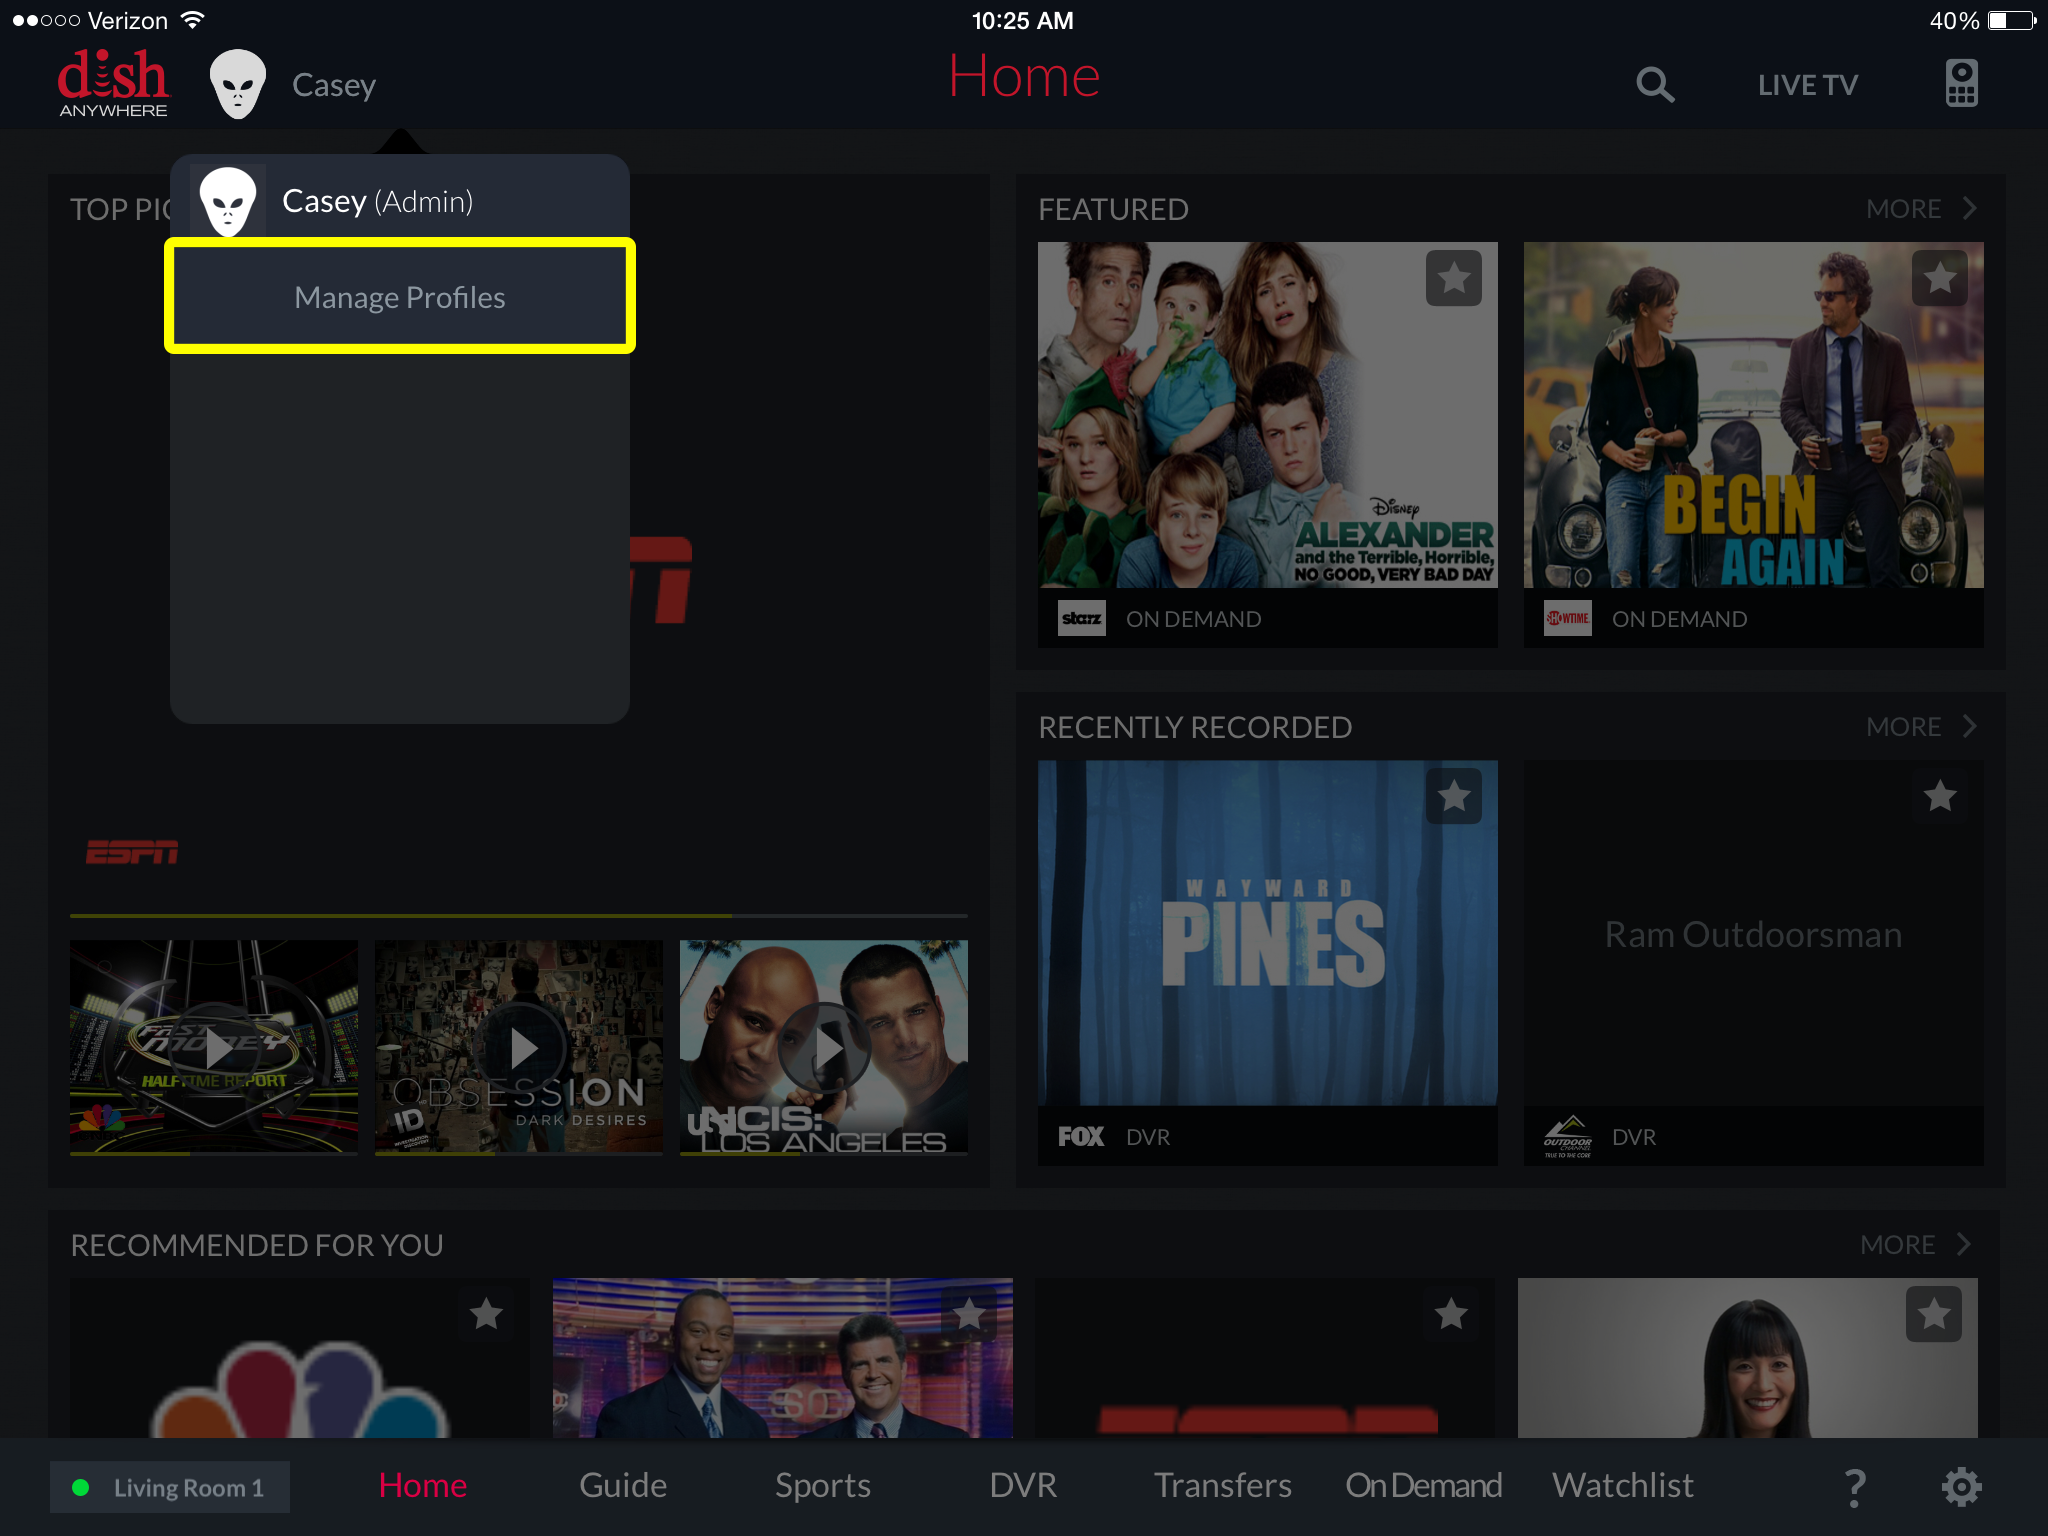 Manage Profiles menu option in DISH Anywhere tablet app